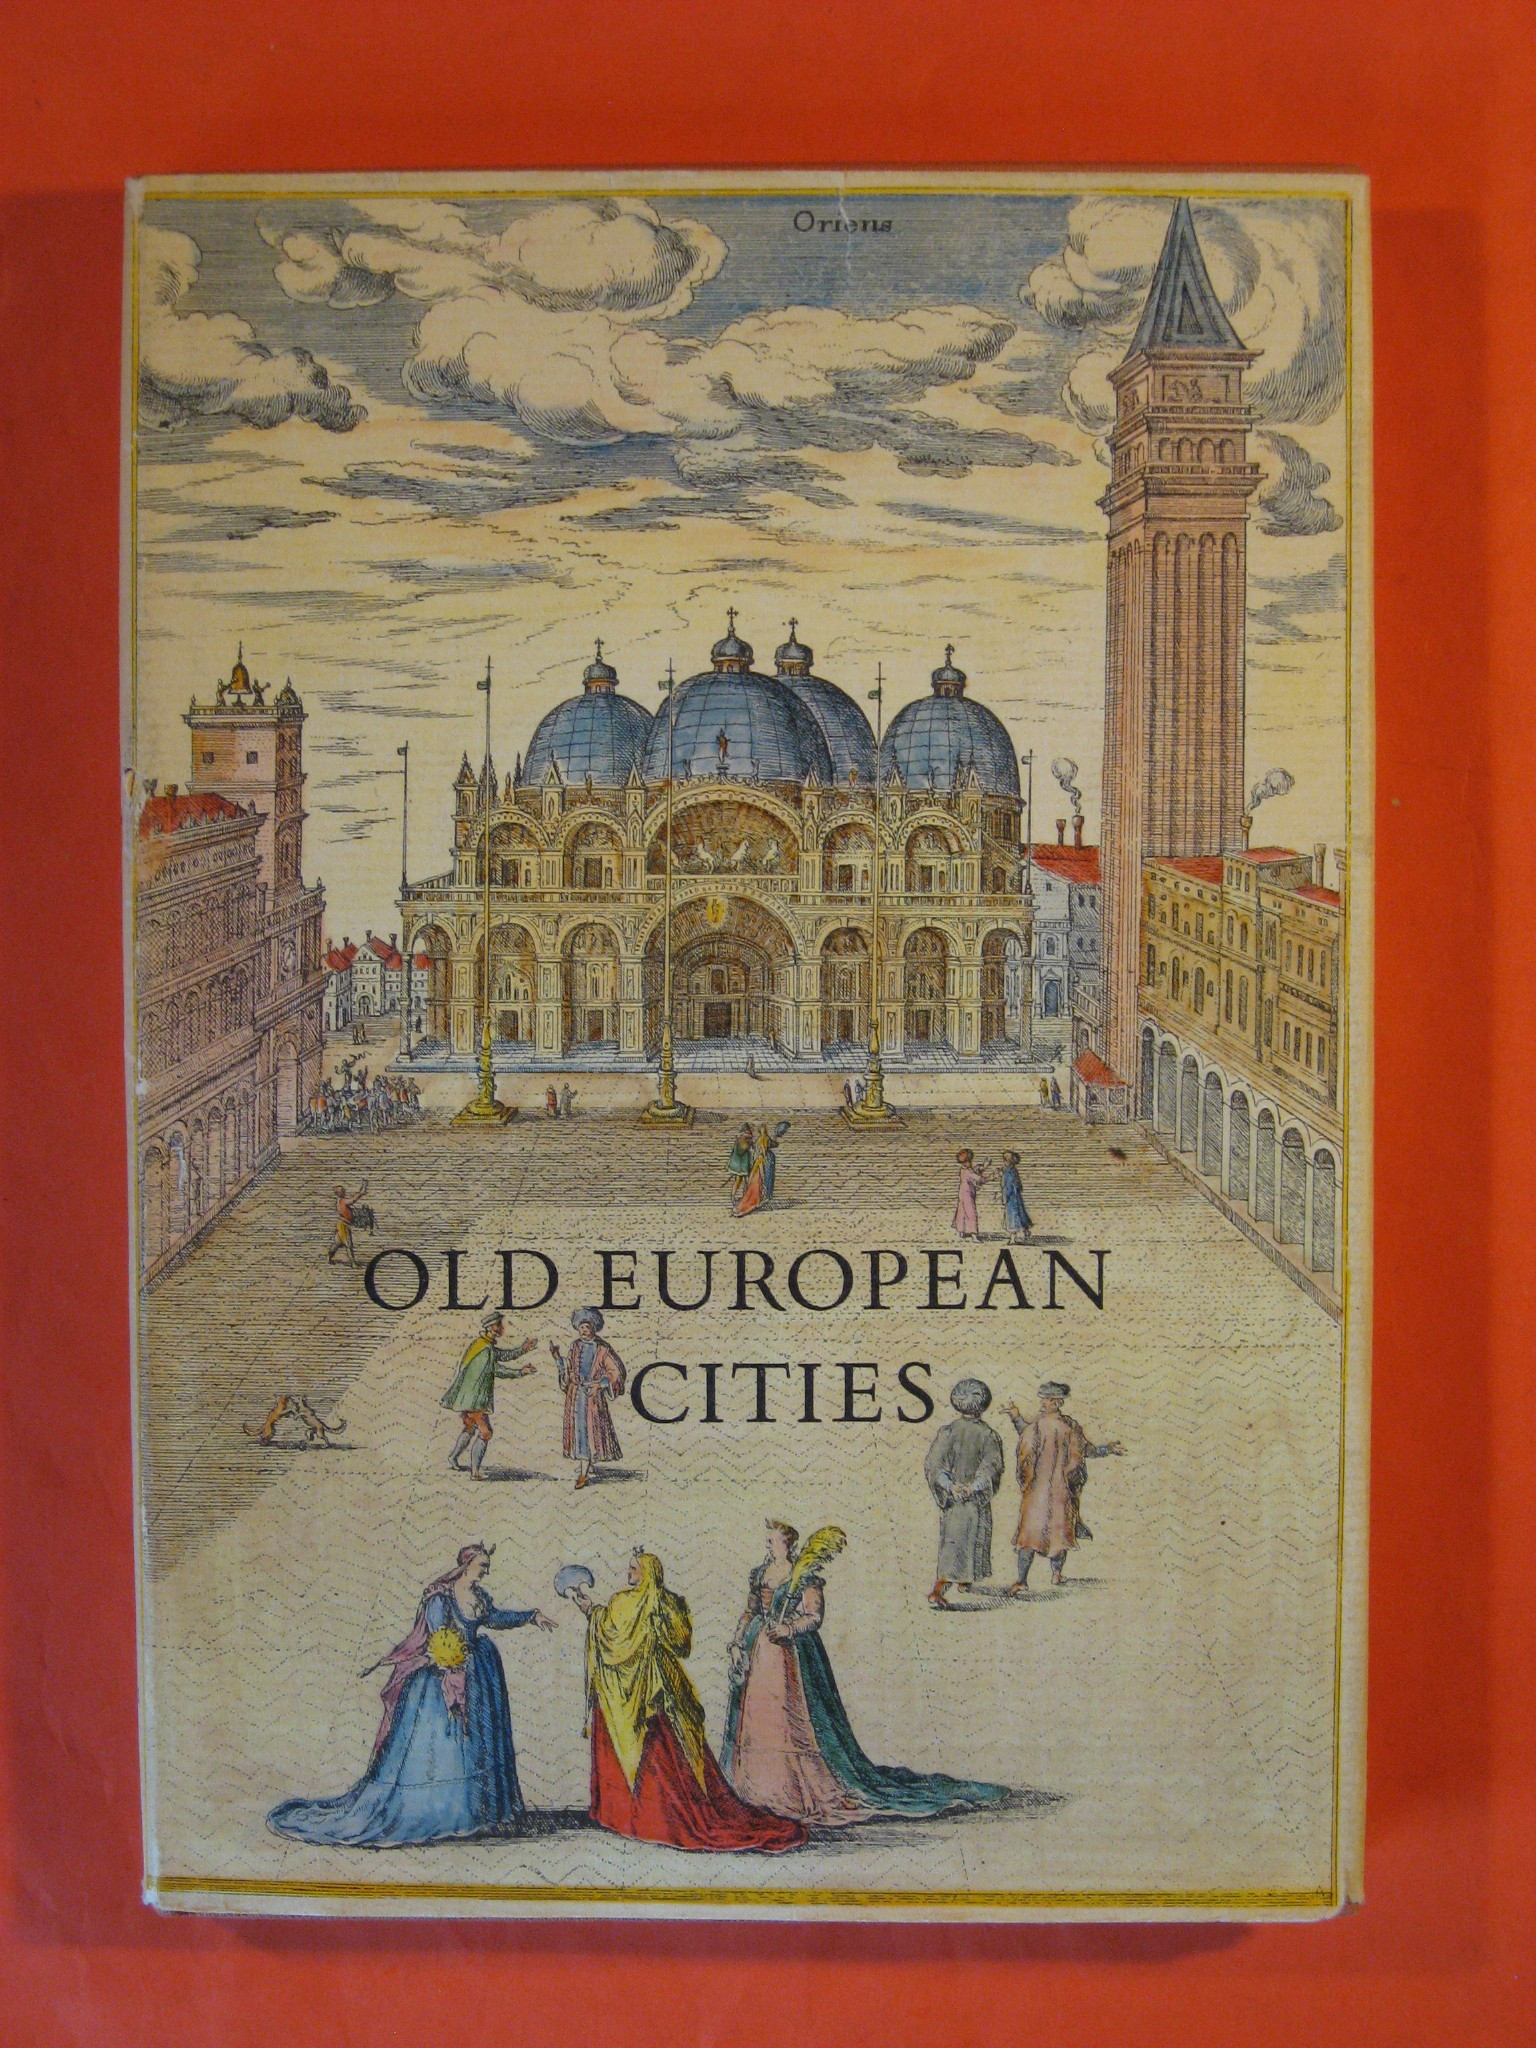 Old European Cities: Thirty-two 16th-Century Maps and Texts from the Civitates Orbis Terrarum of Georg Braun & Franz Hogenberg with Description by Ruthardt Oehme of Early Map-Making Techniques, Braun, Georg; Hogenberg, Franz; Oehme, Ruthardt